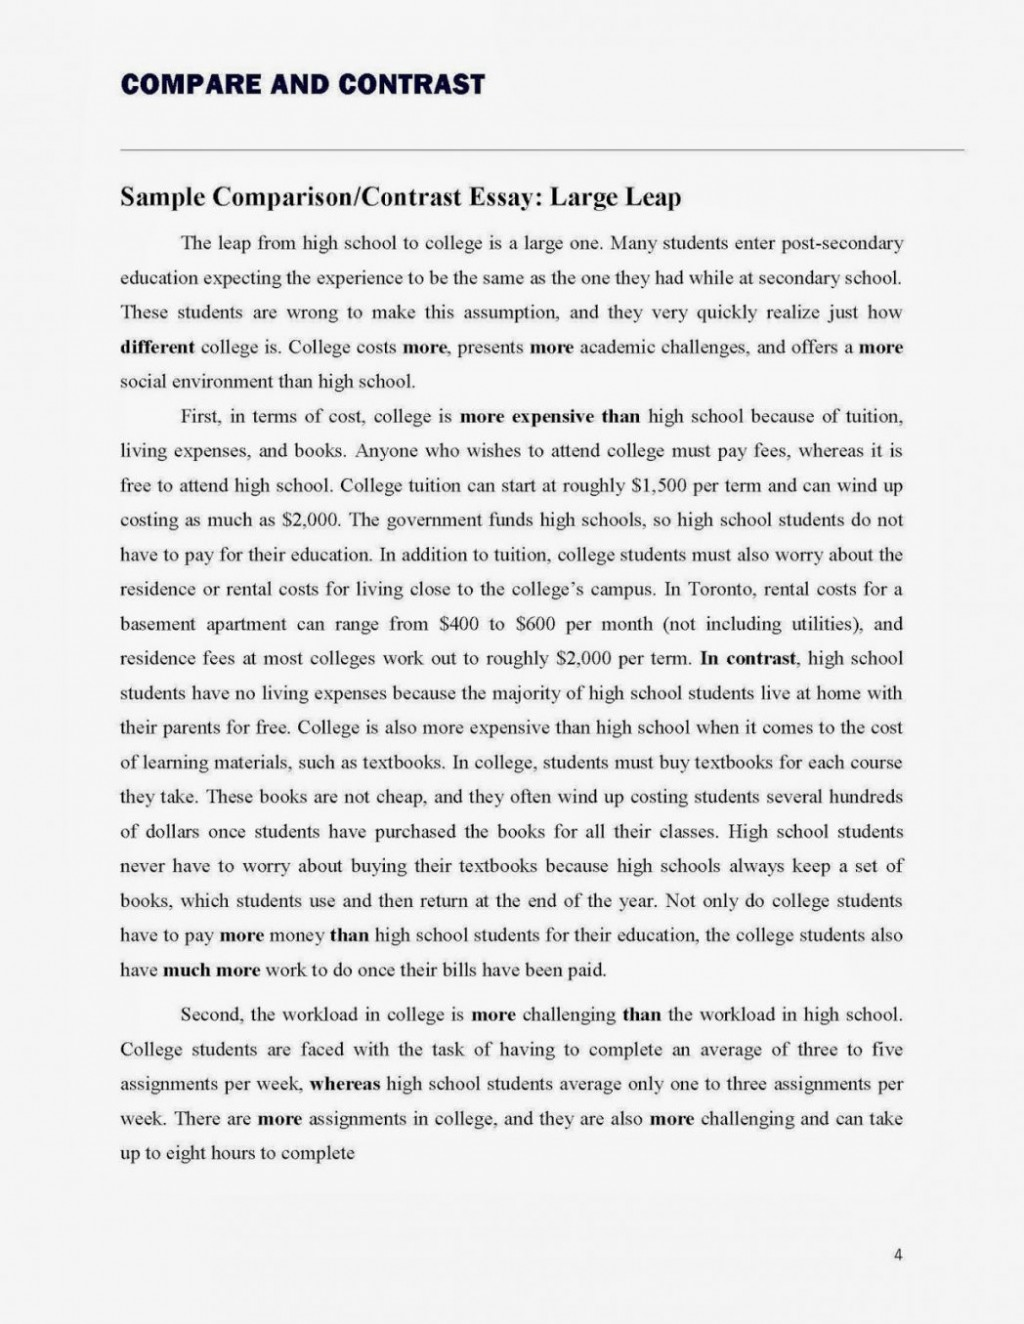 016 Essay Example How To Write Compare And Contrast On High School College Level Topics Structure Format Transitions Prompts Outline Introduction Template Examples Striking A Good Essays Large